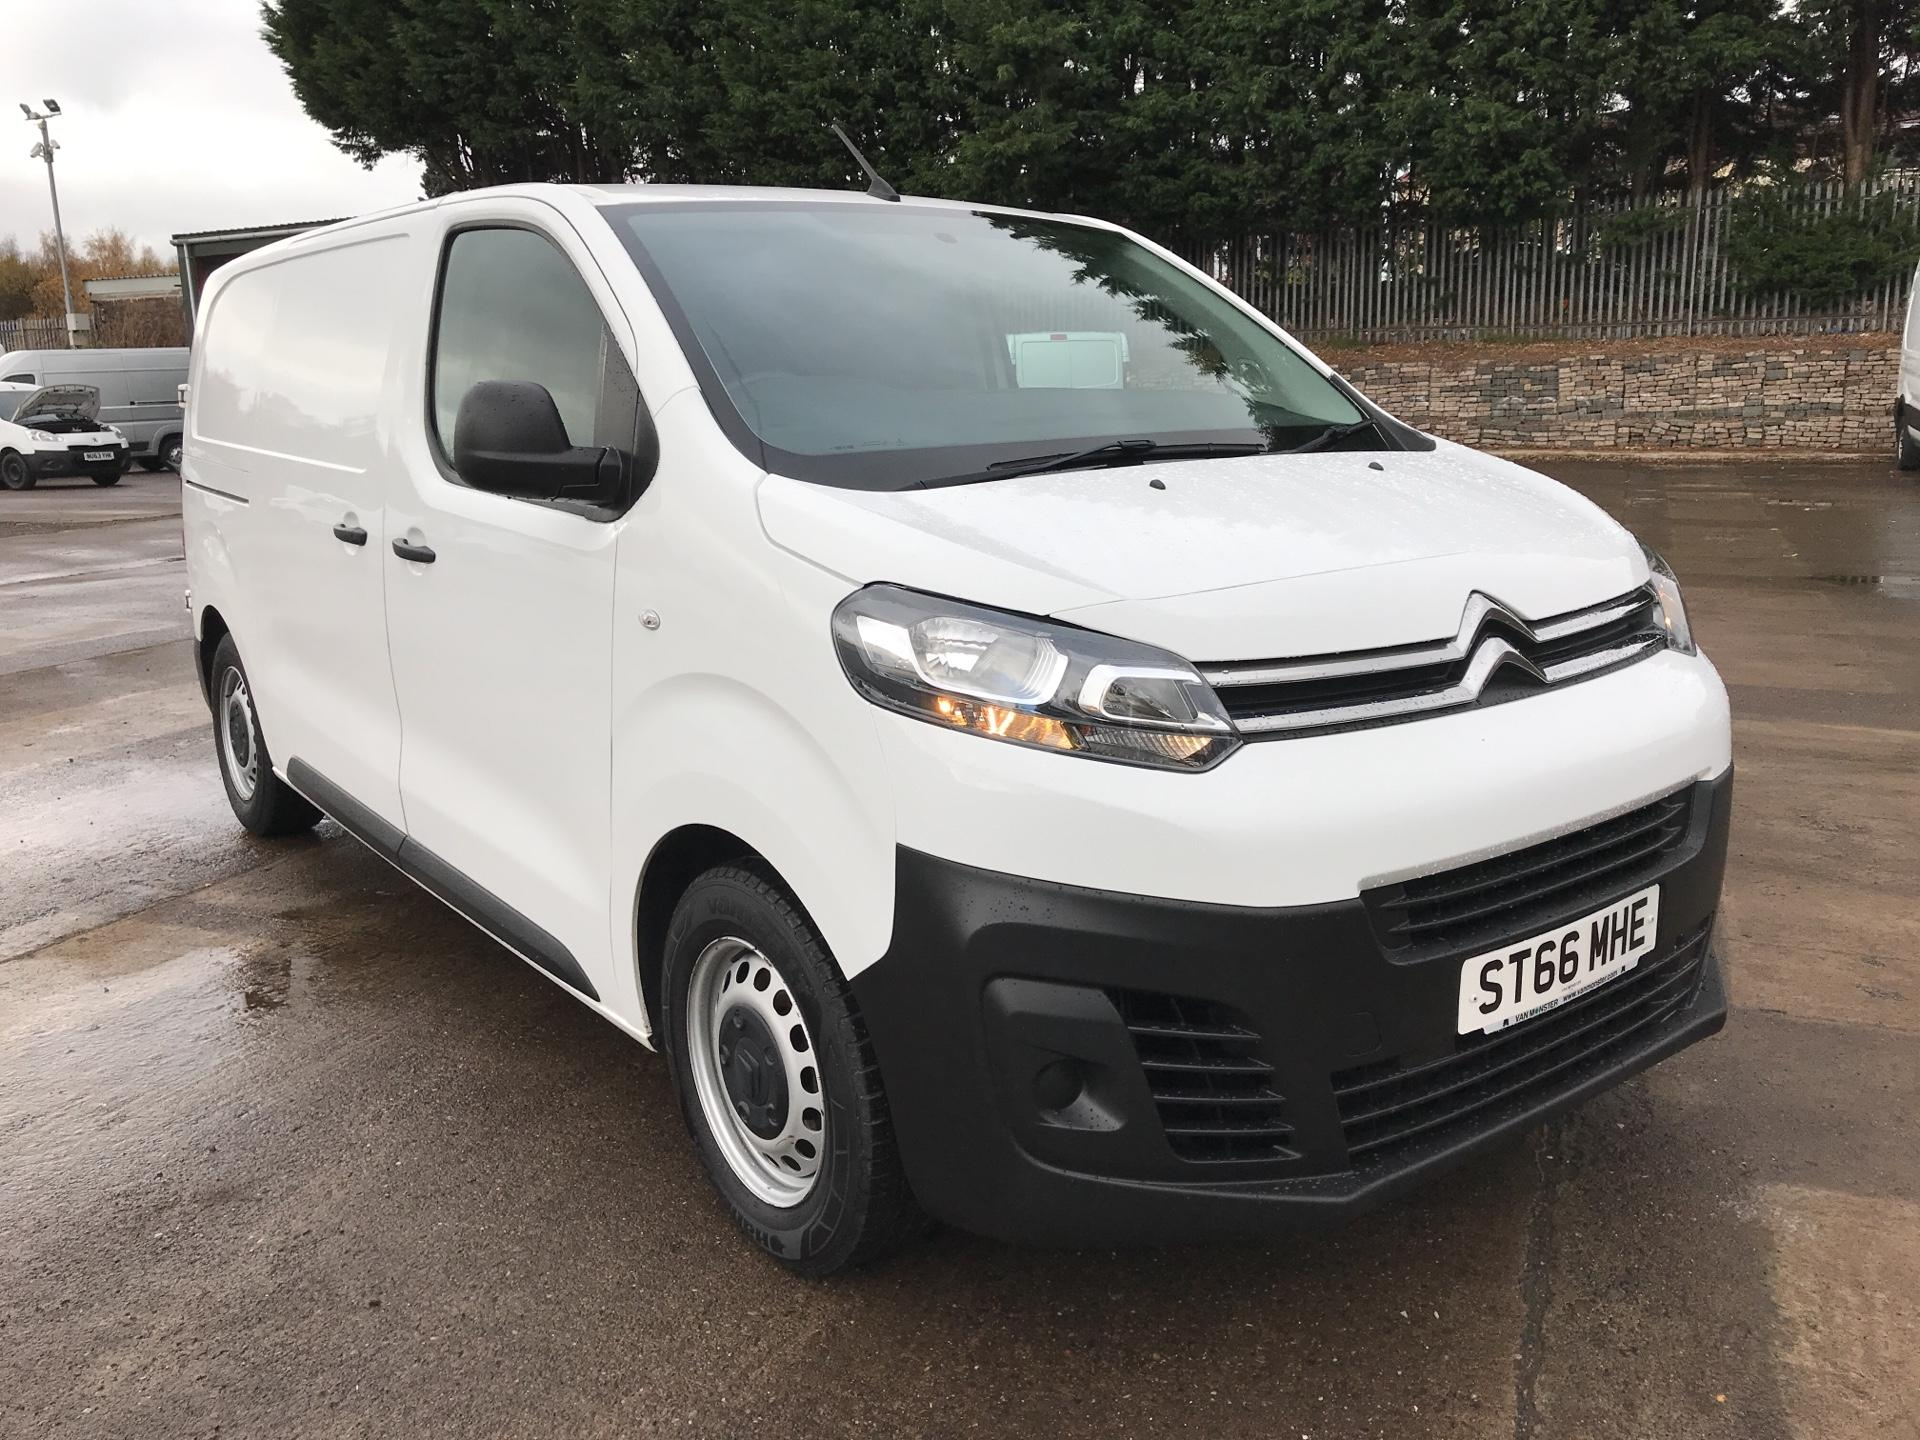 2016 Citroen Dispatch M DIESEL 1000 1.6 BLUEHDI 95PS VAN X EURO 6 (ST66MHE)